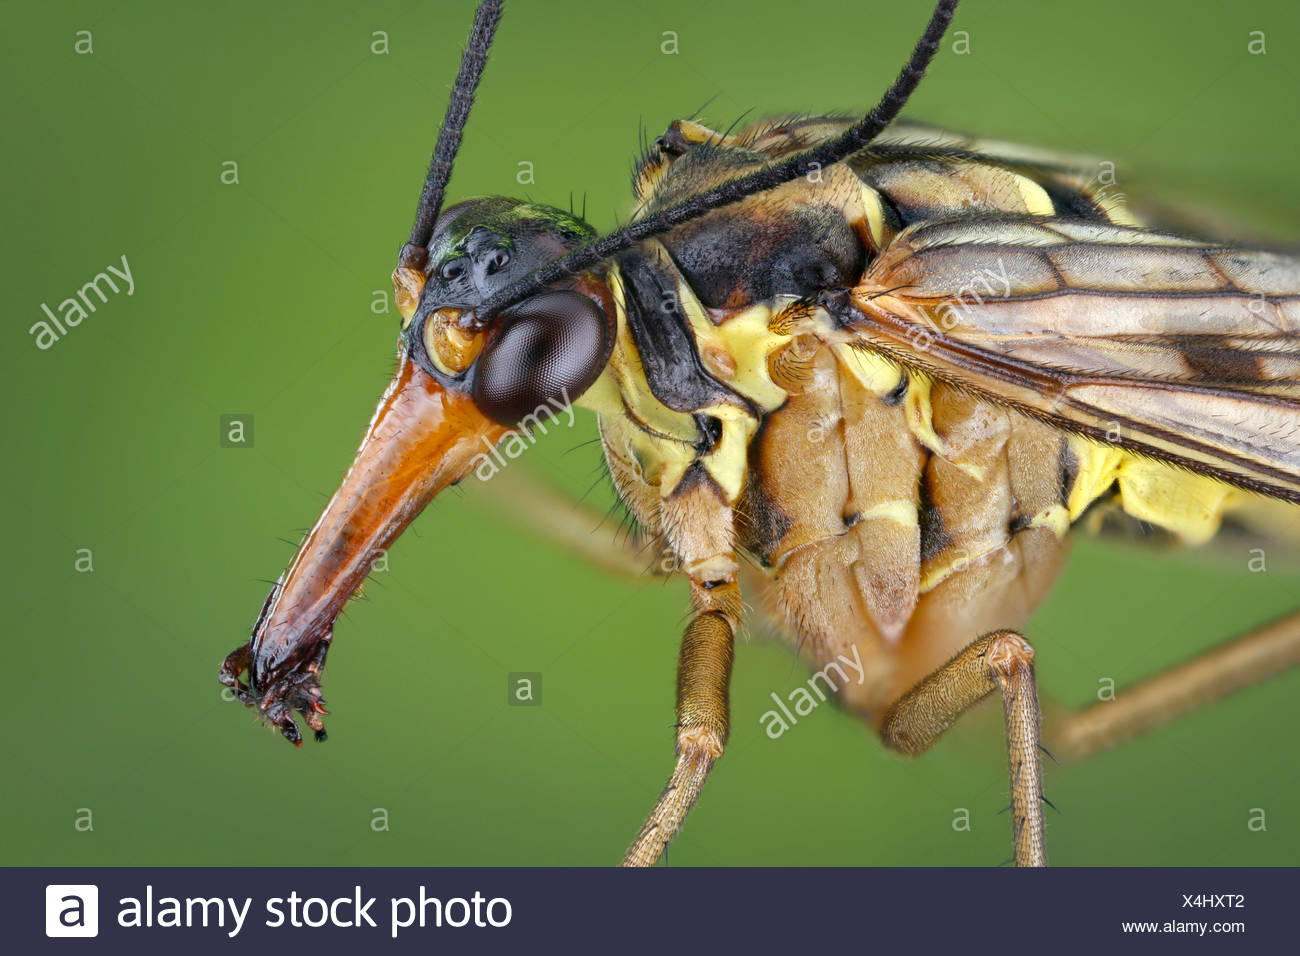 Head of a male scorpionfly (Panorpa communis), extreme close-up Stock Photo